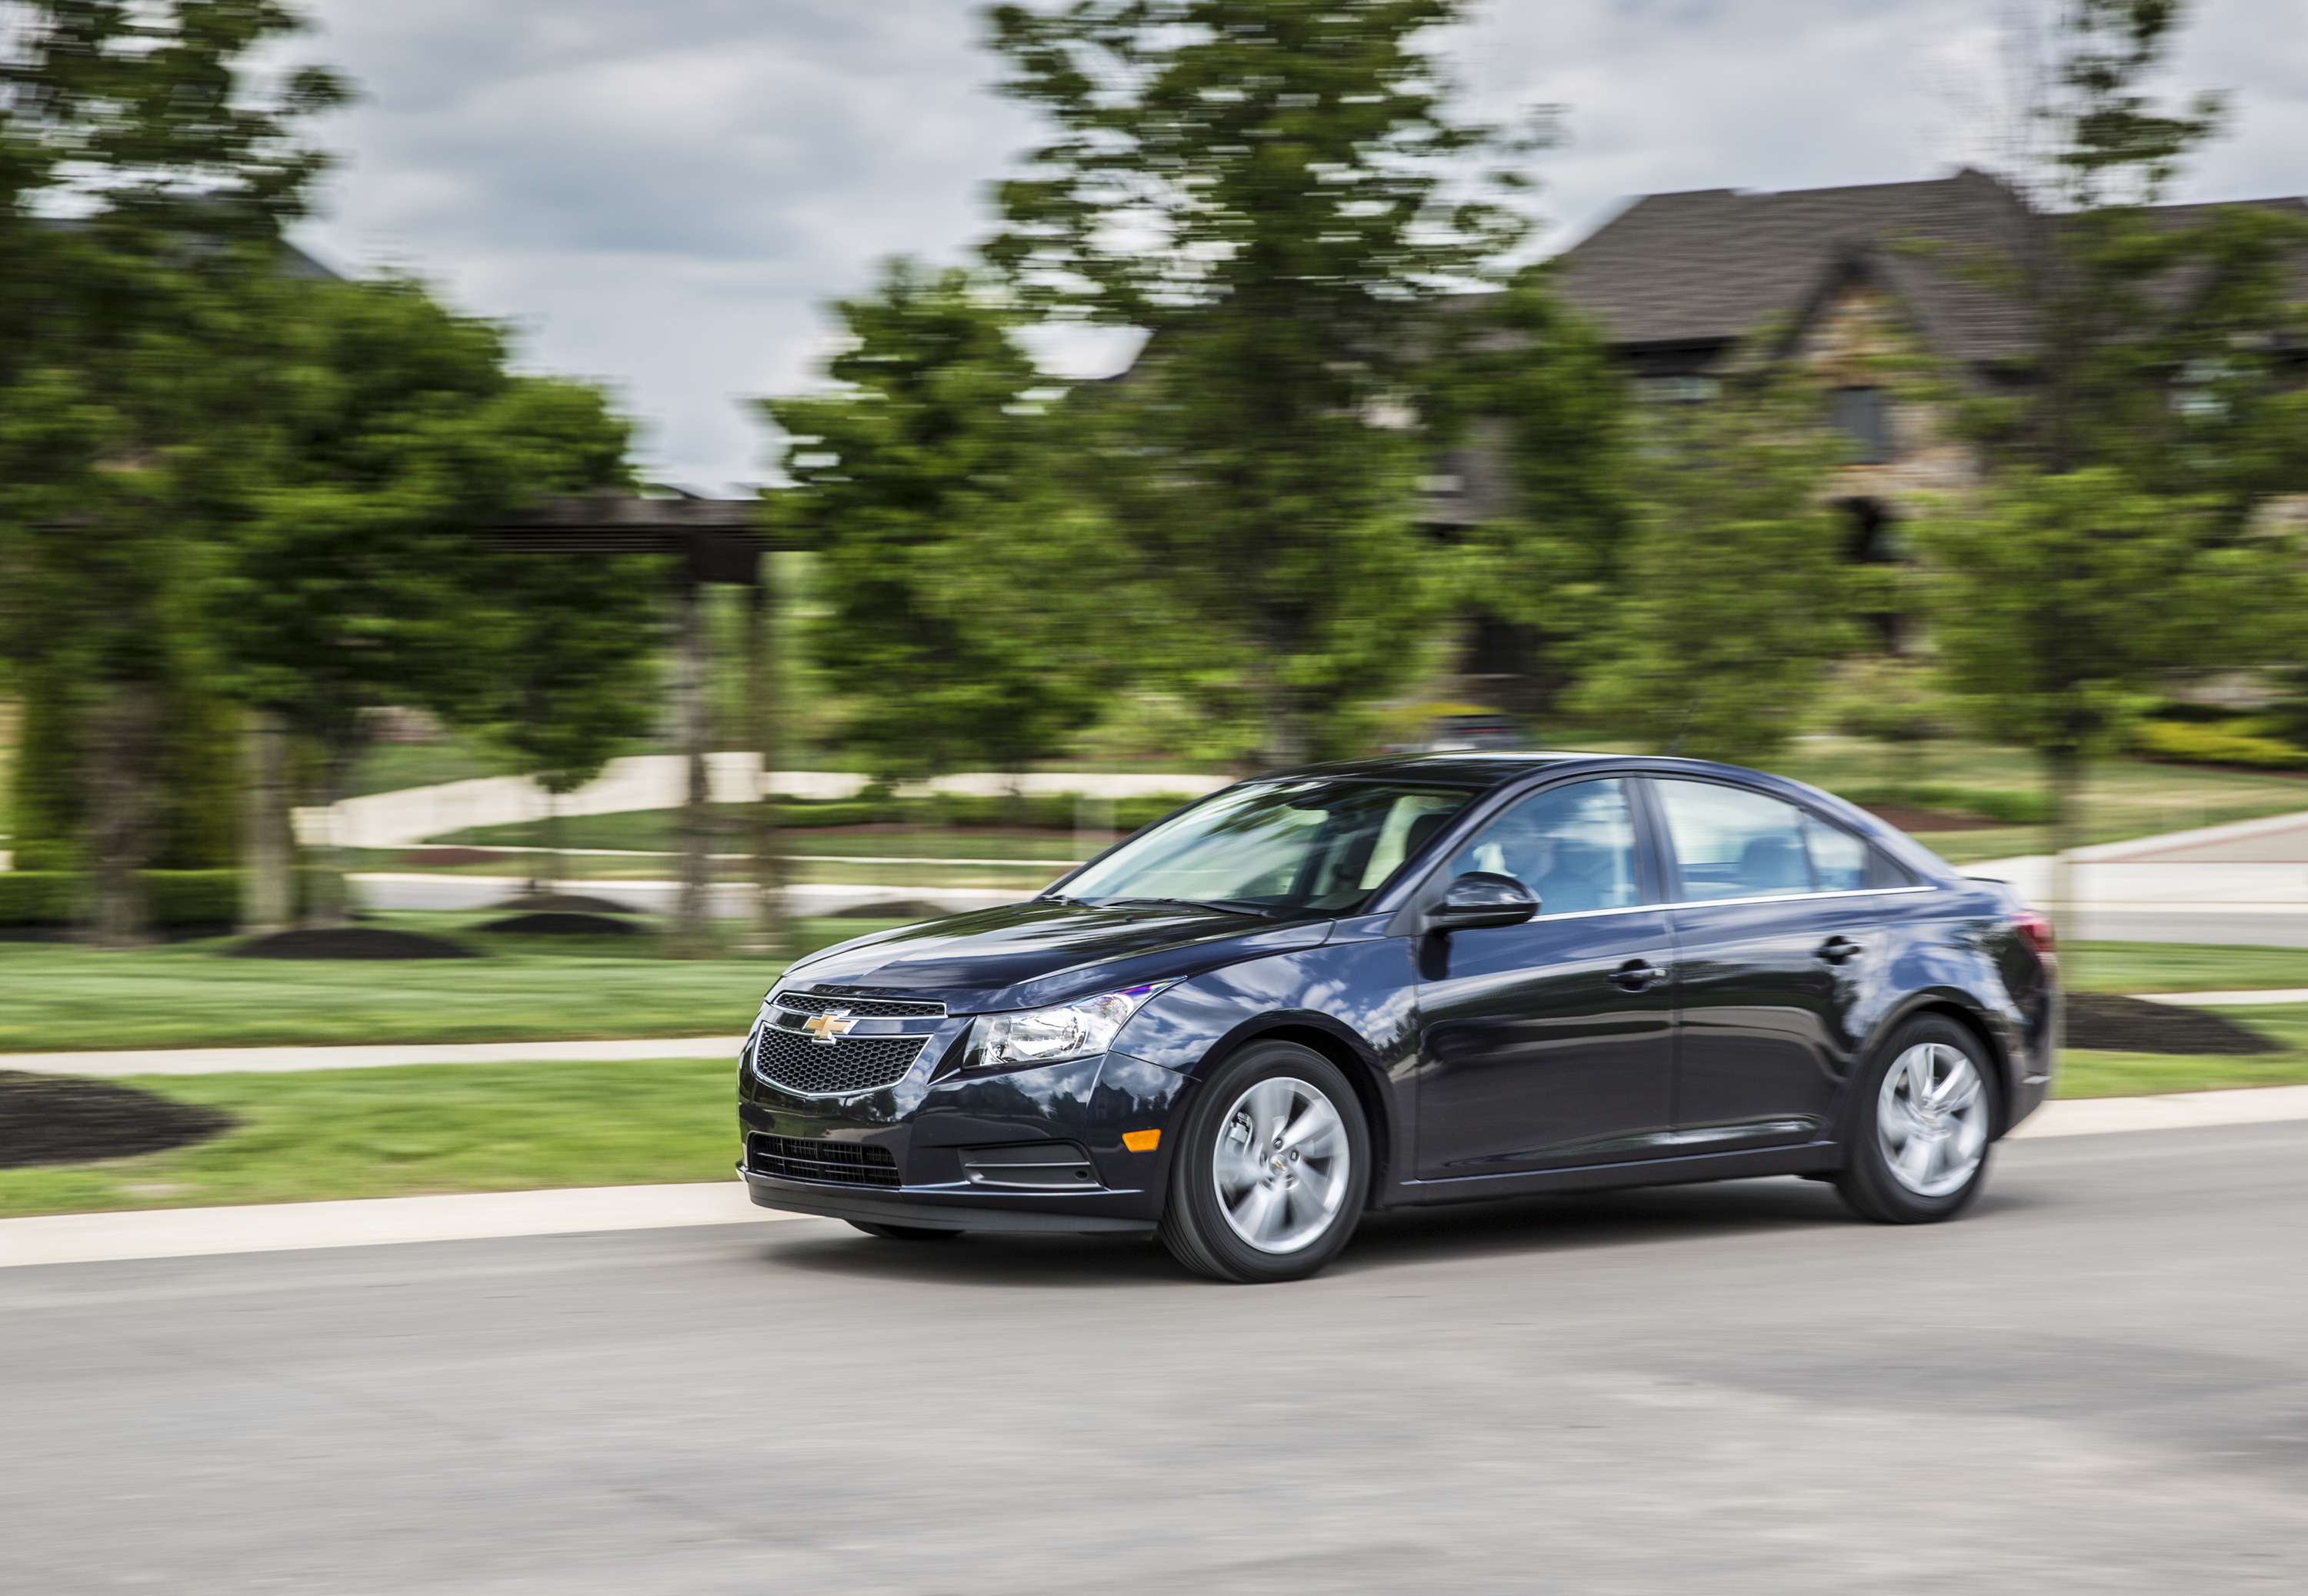 chevrolet cars cruze ratings stillb consumer reviews msrp prices overview reports